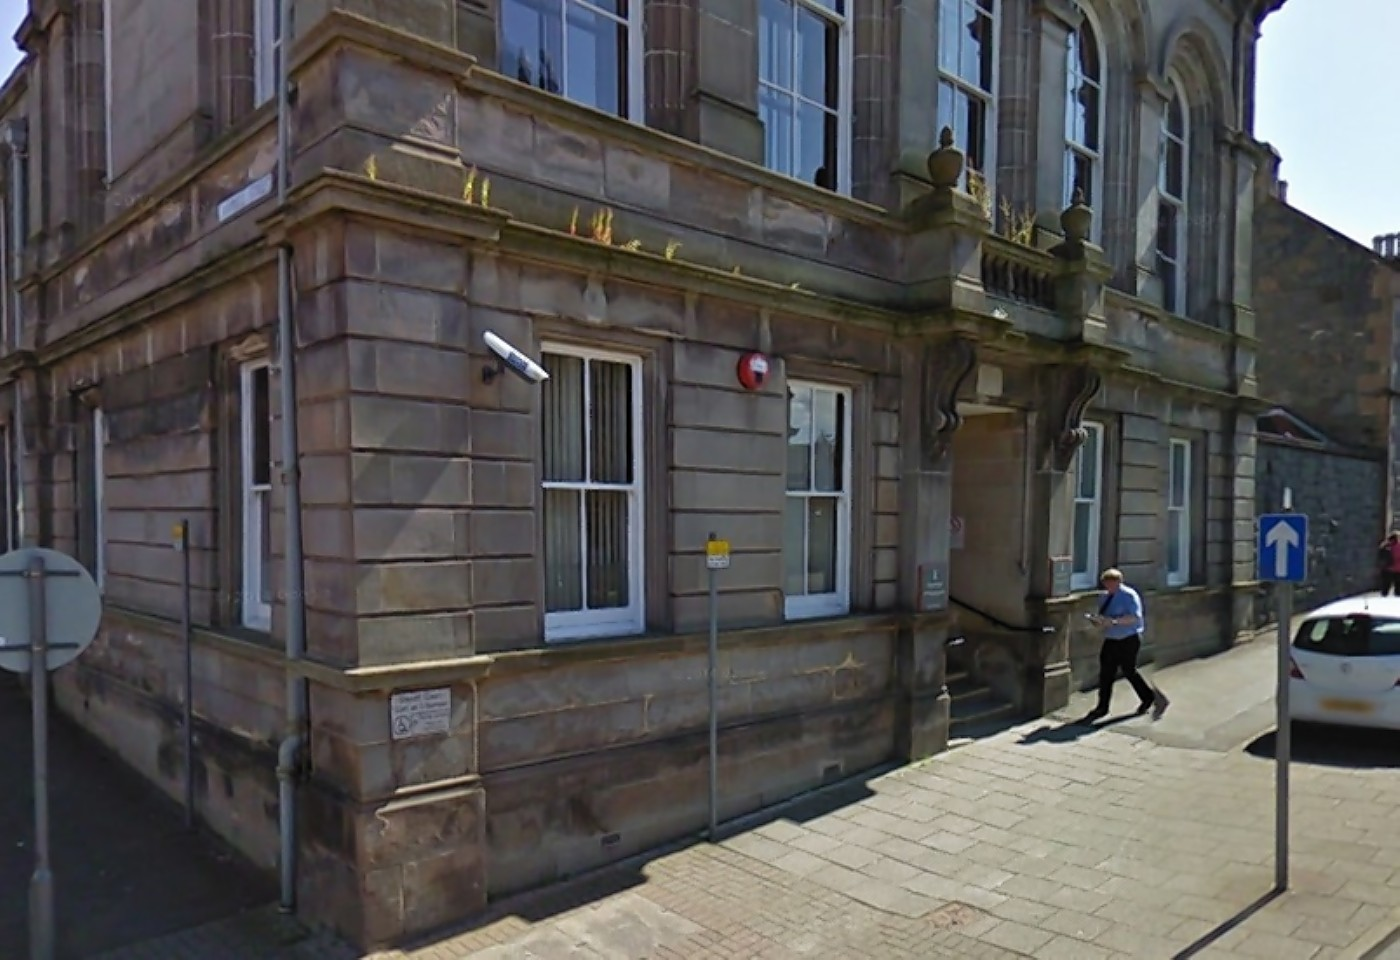 The case was heard at Oban Sheriff Court